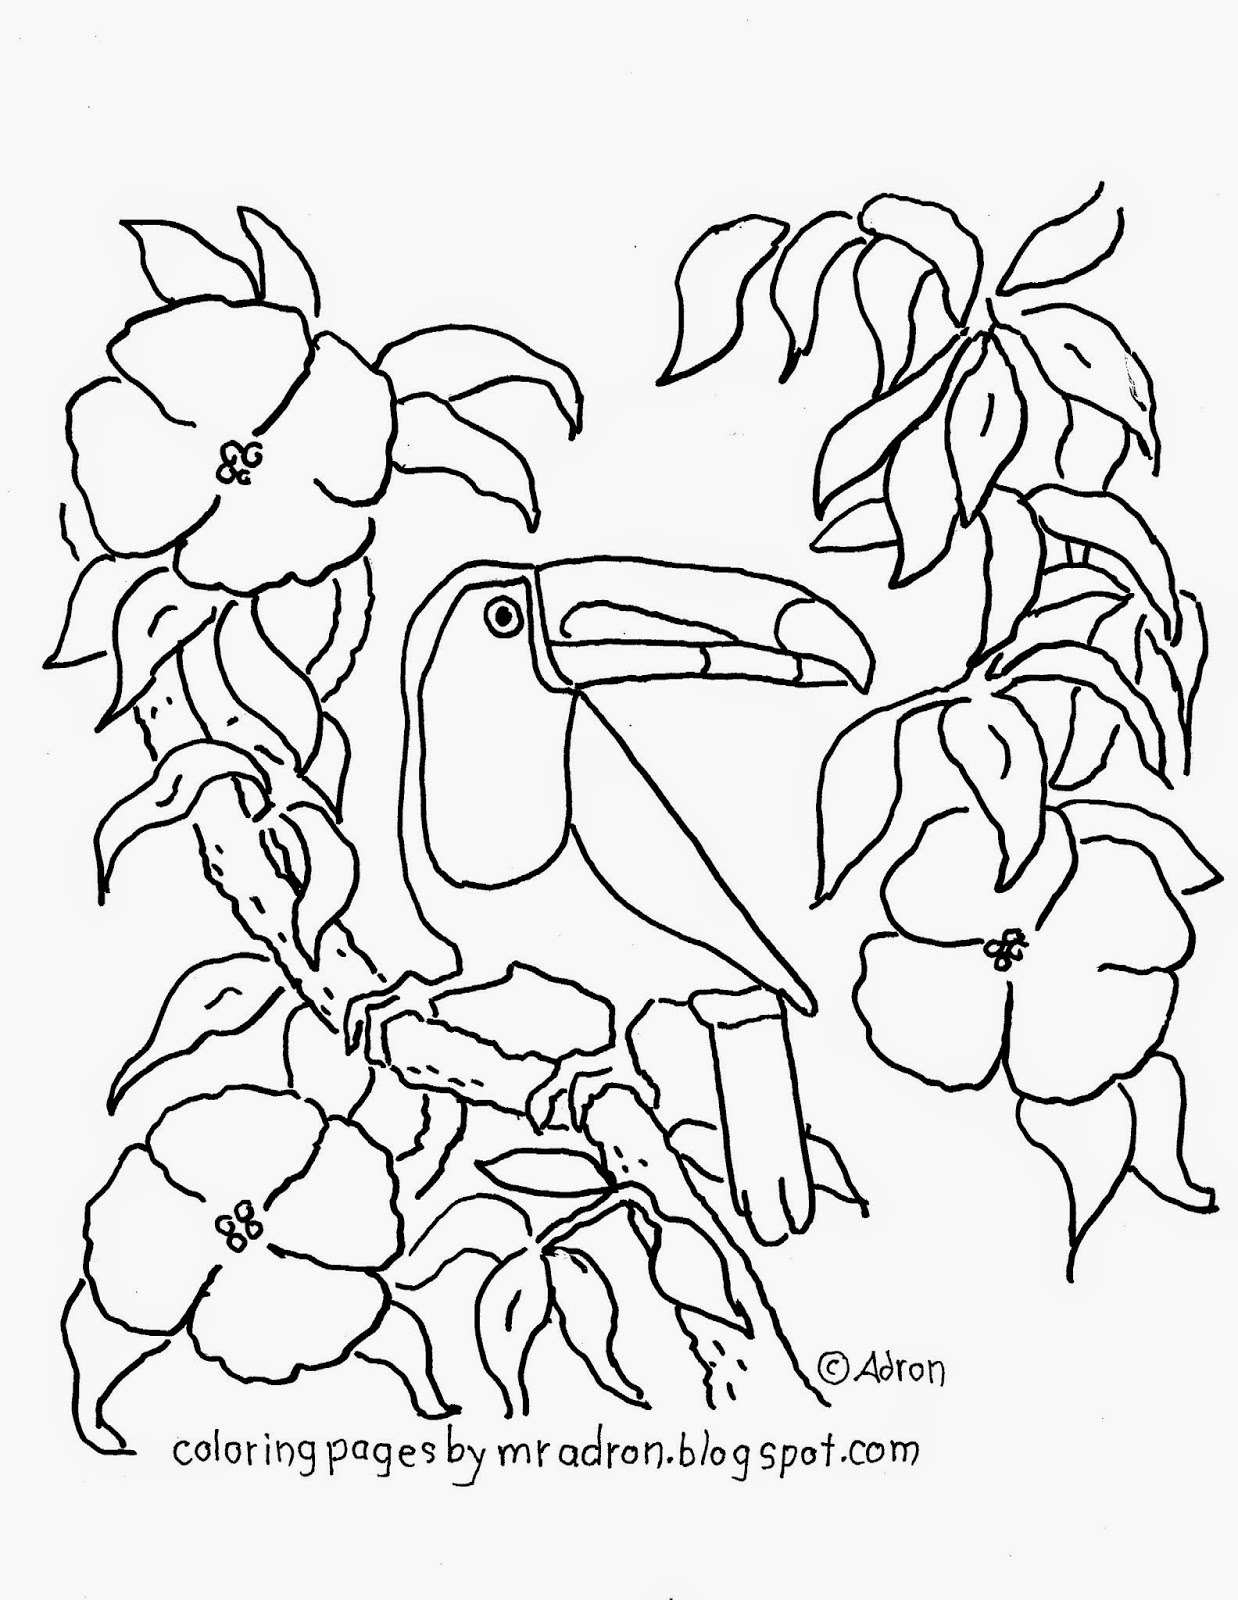 toucan coloring pages to print | Coloring Pages for Kids by Mr. Adron: Free Printable ...